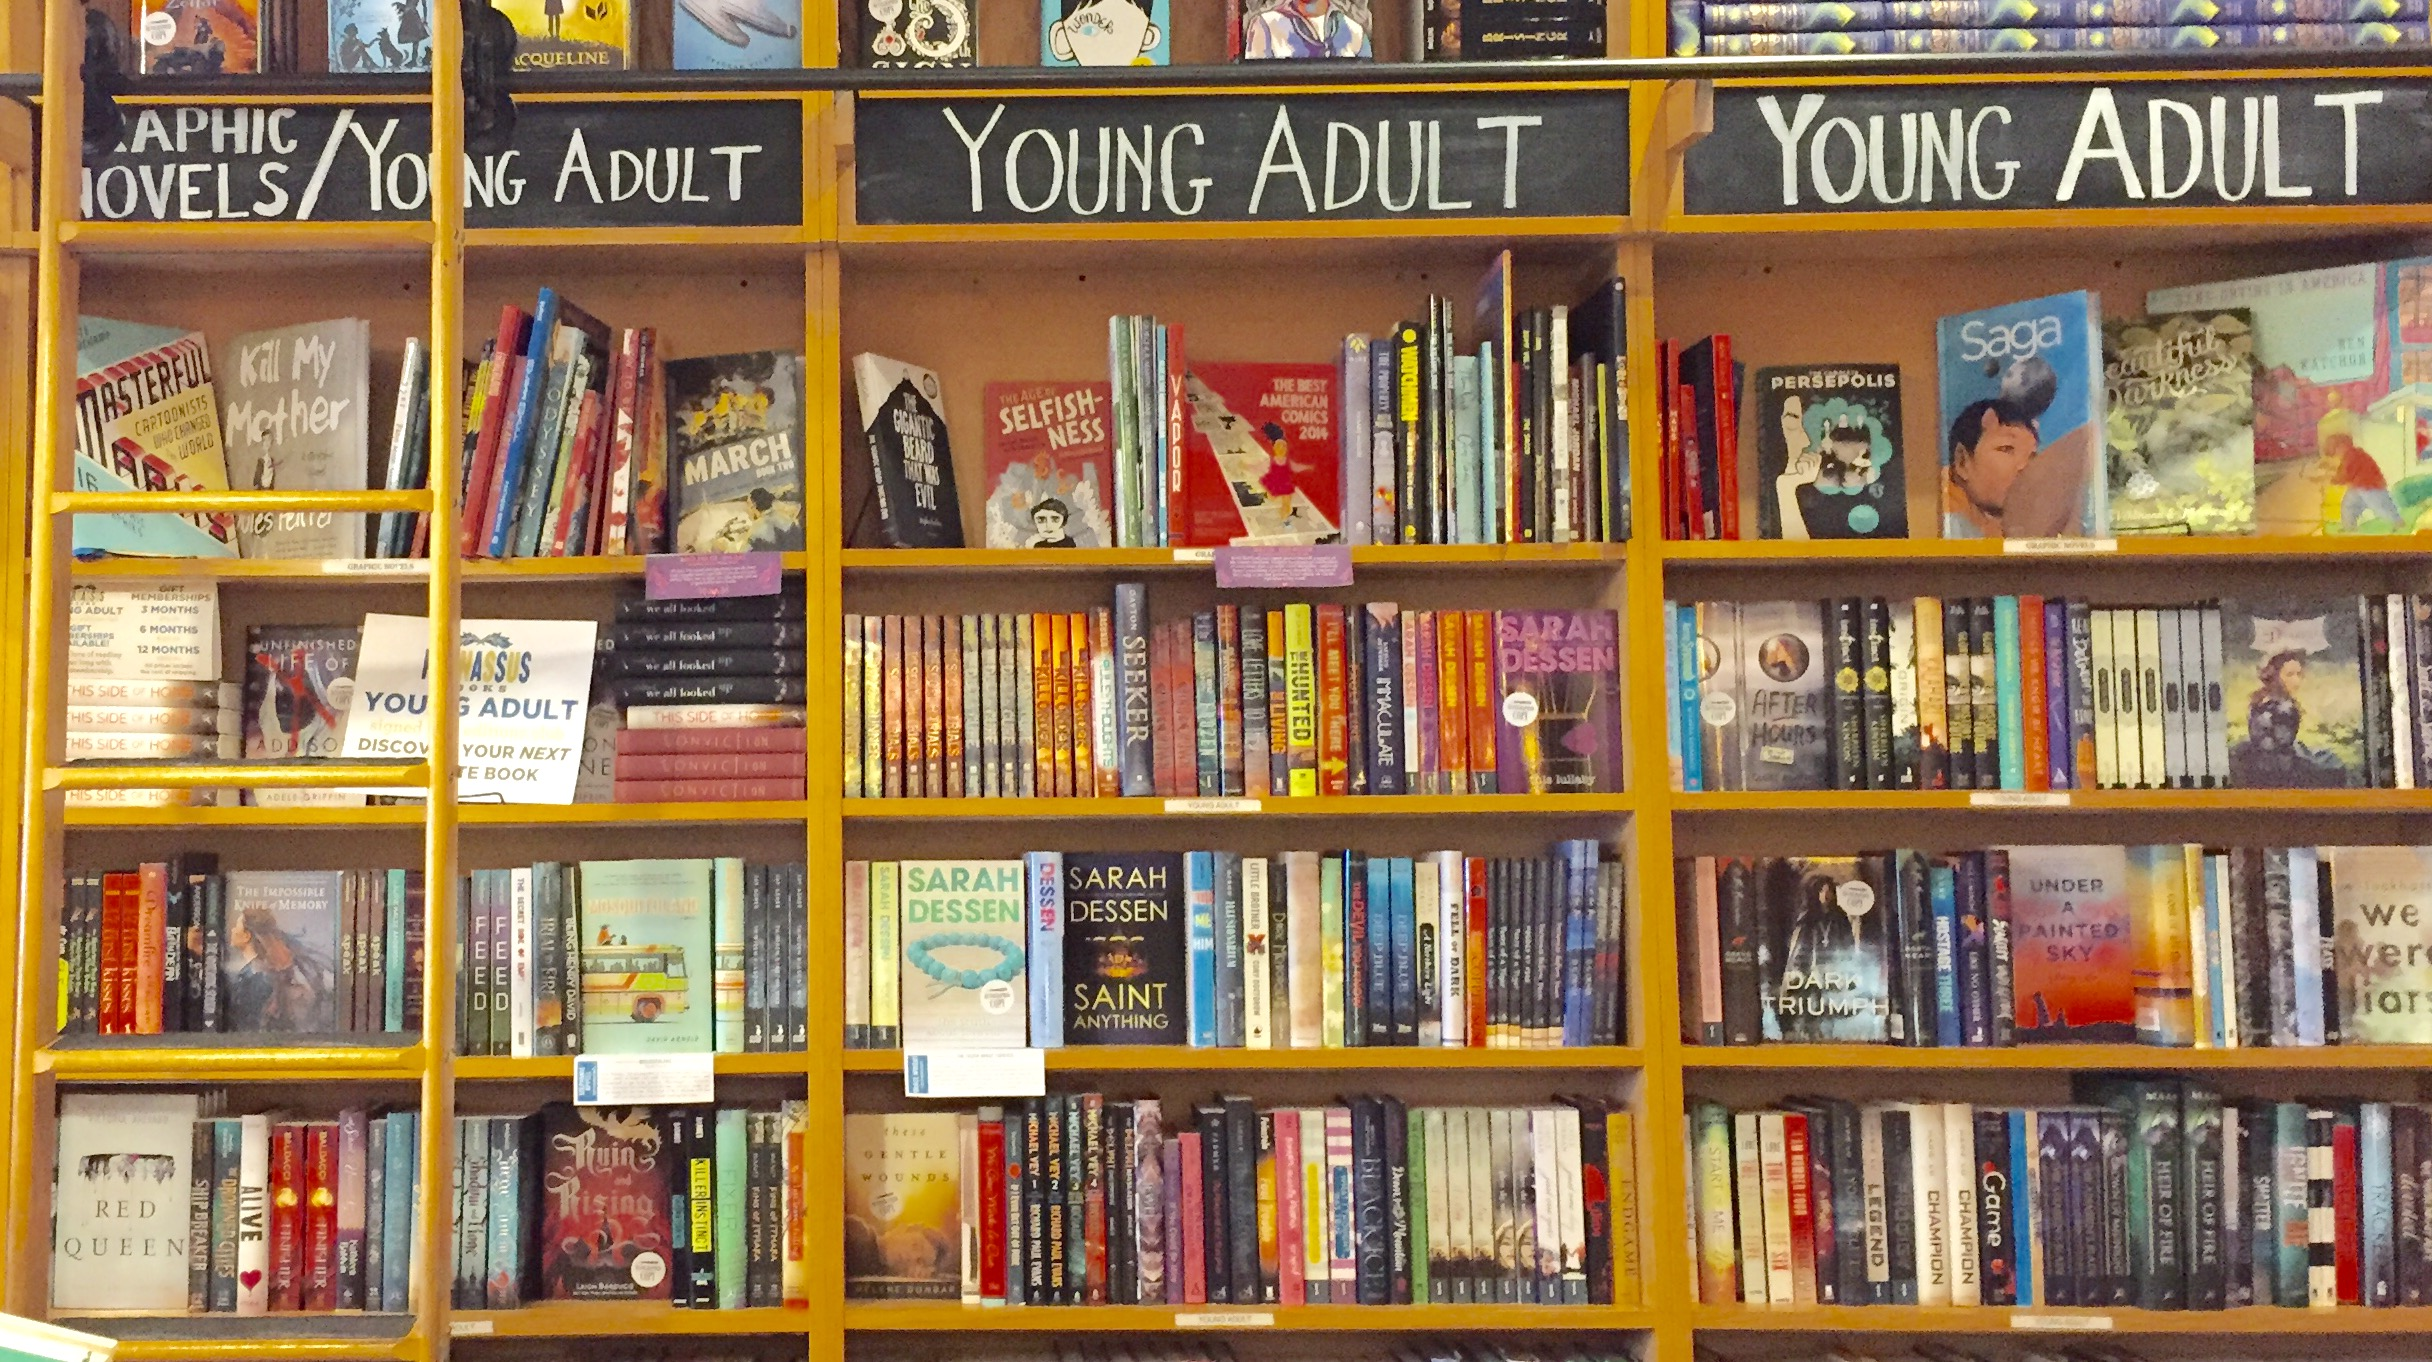 4 Female Black Ya Authors Tearing It Up In Young Adult Literature